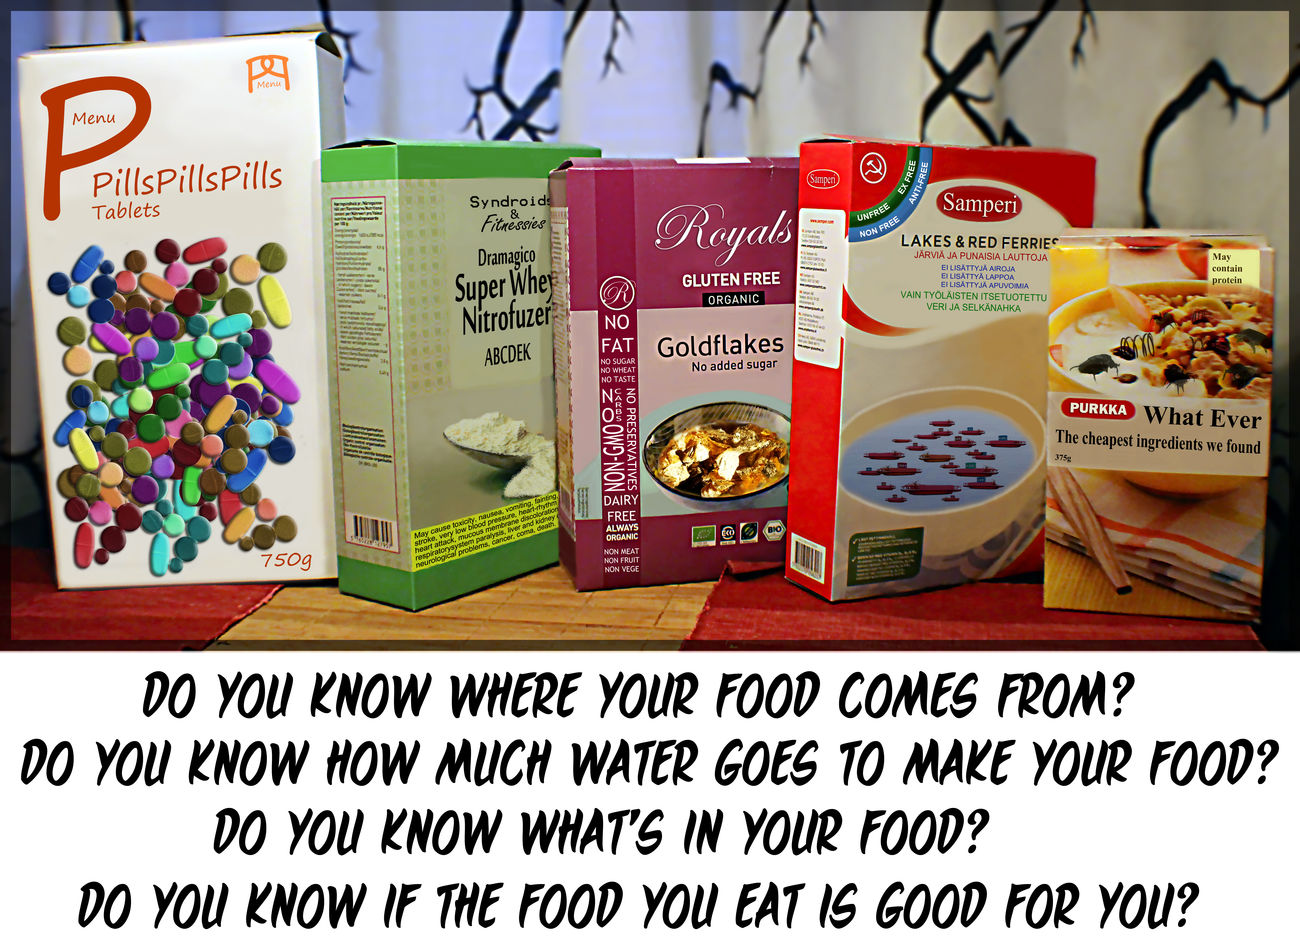 Do you know what you eat? Art Awareness Boxes Cerial Flakes Food Gold Information No People Nutritions Photo Manipulation Pills Product Text Murot Hiutaleet Teksti Ruoka Anti Ad Kuvankäsittely Lisäravinne Ravinto